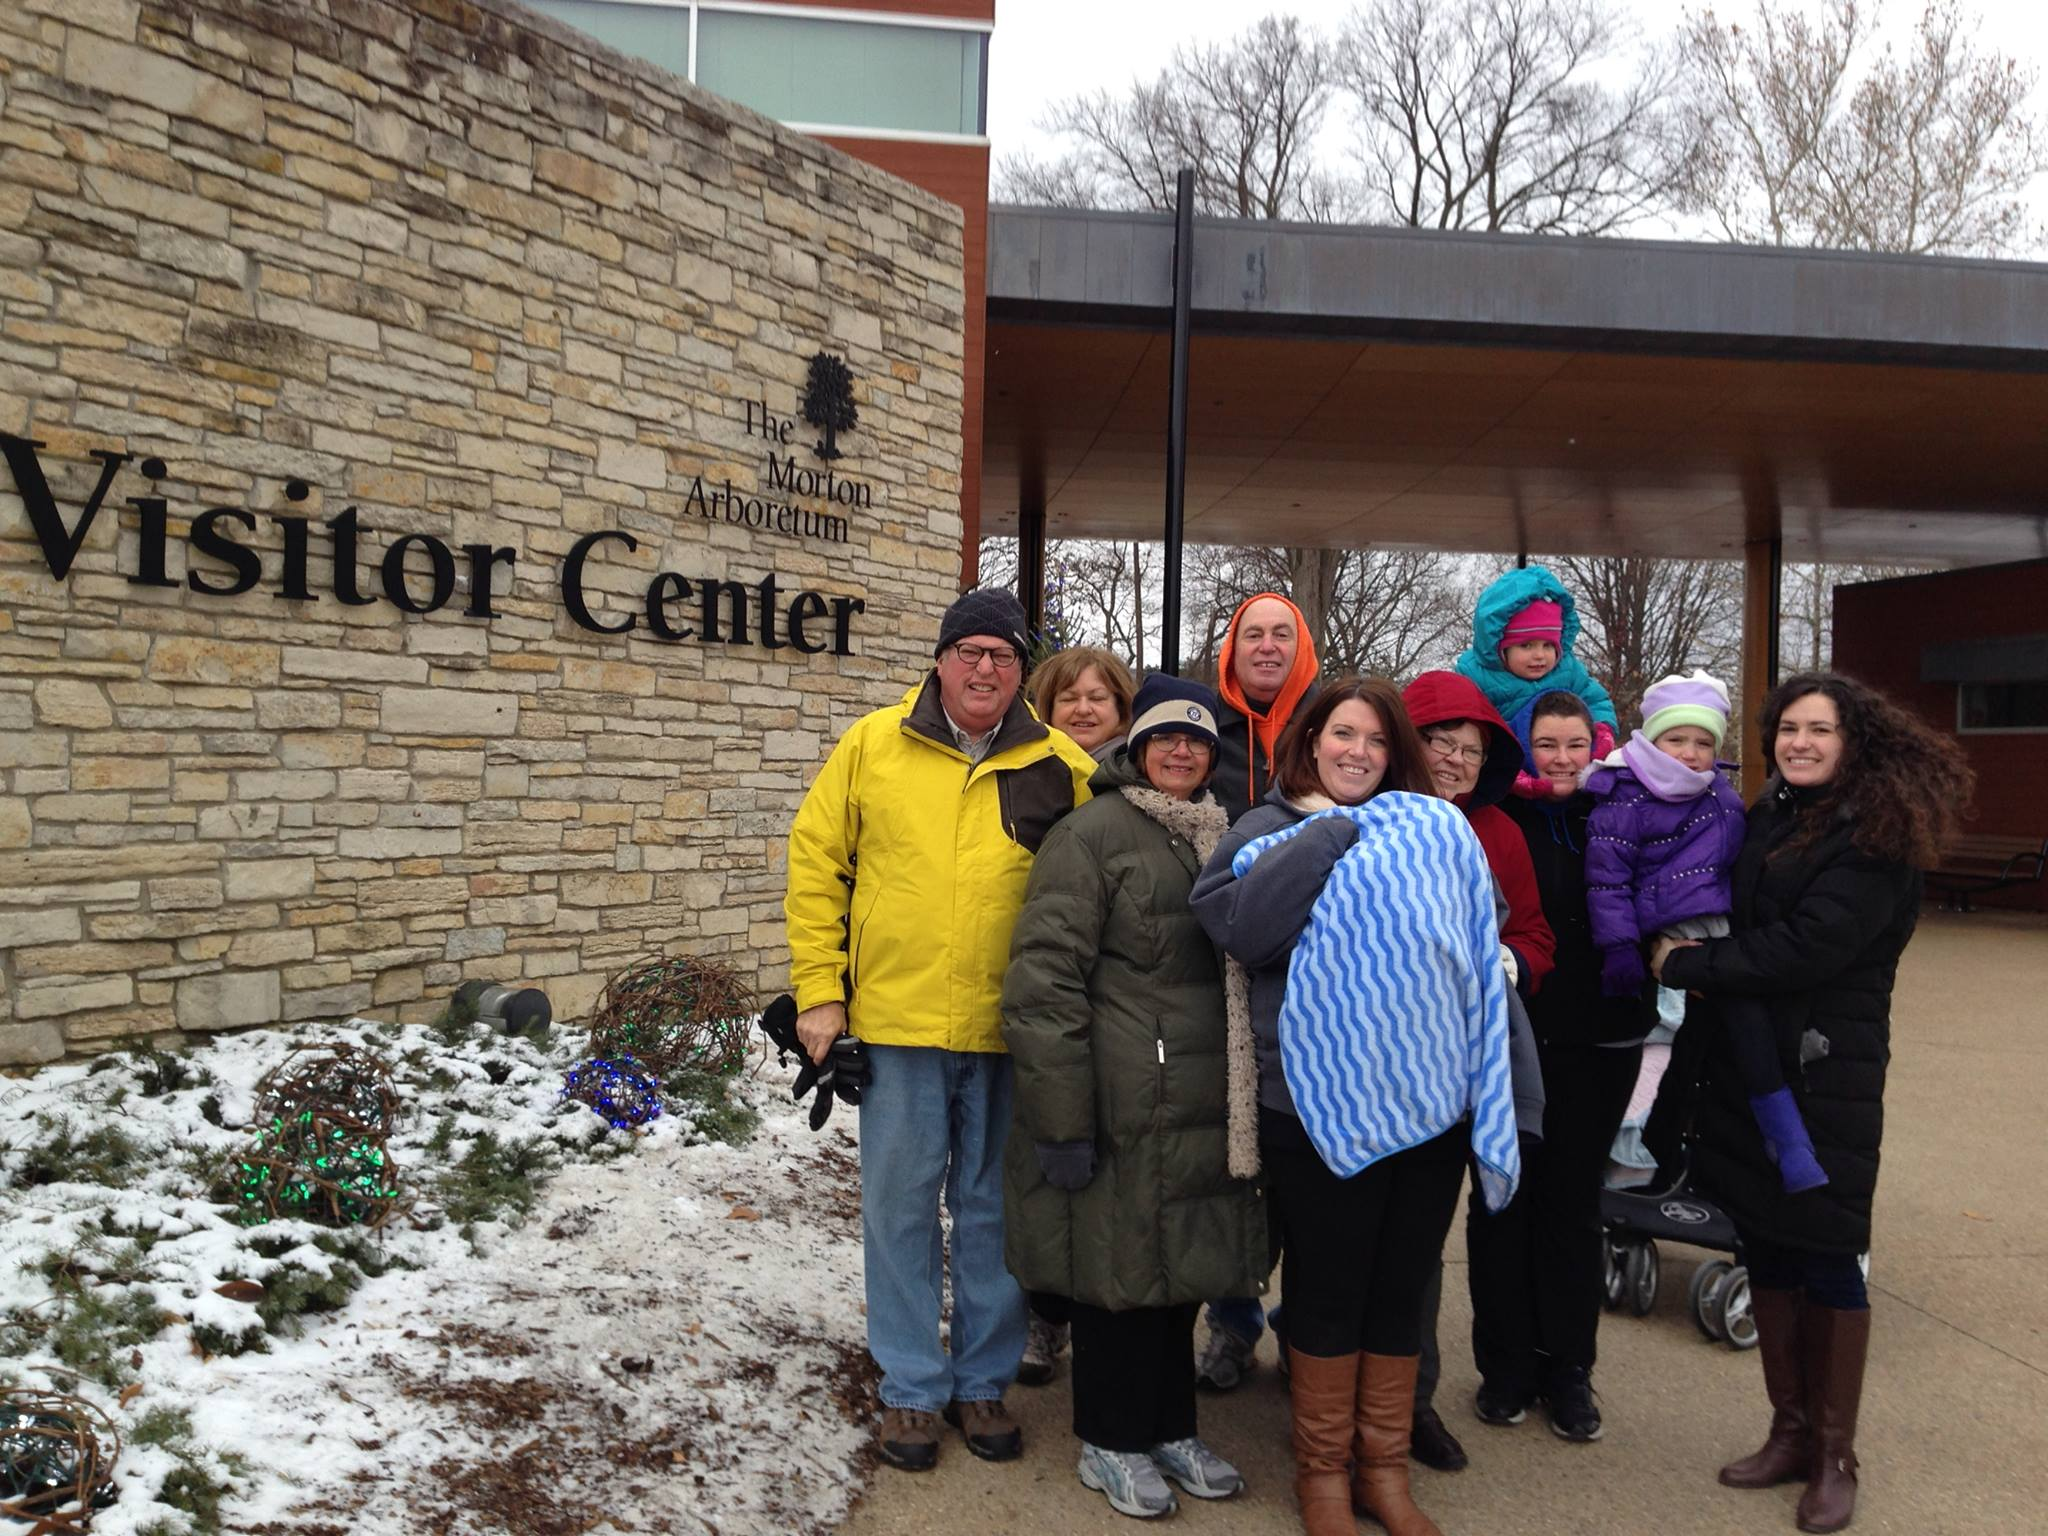 Family posing together in from of Visitor Center at The Morton Arboretum, with snow